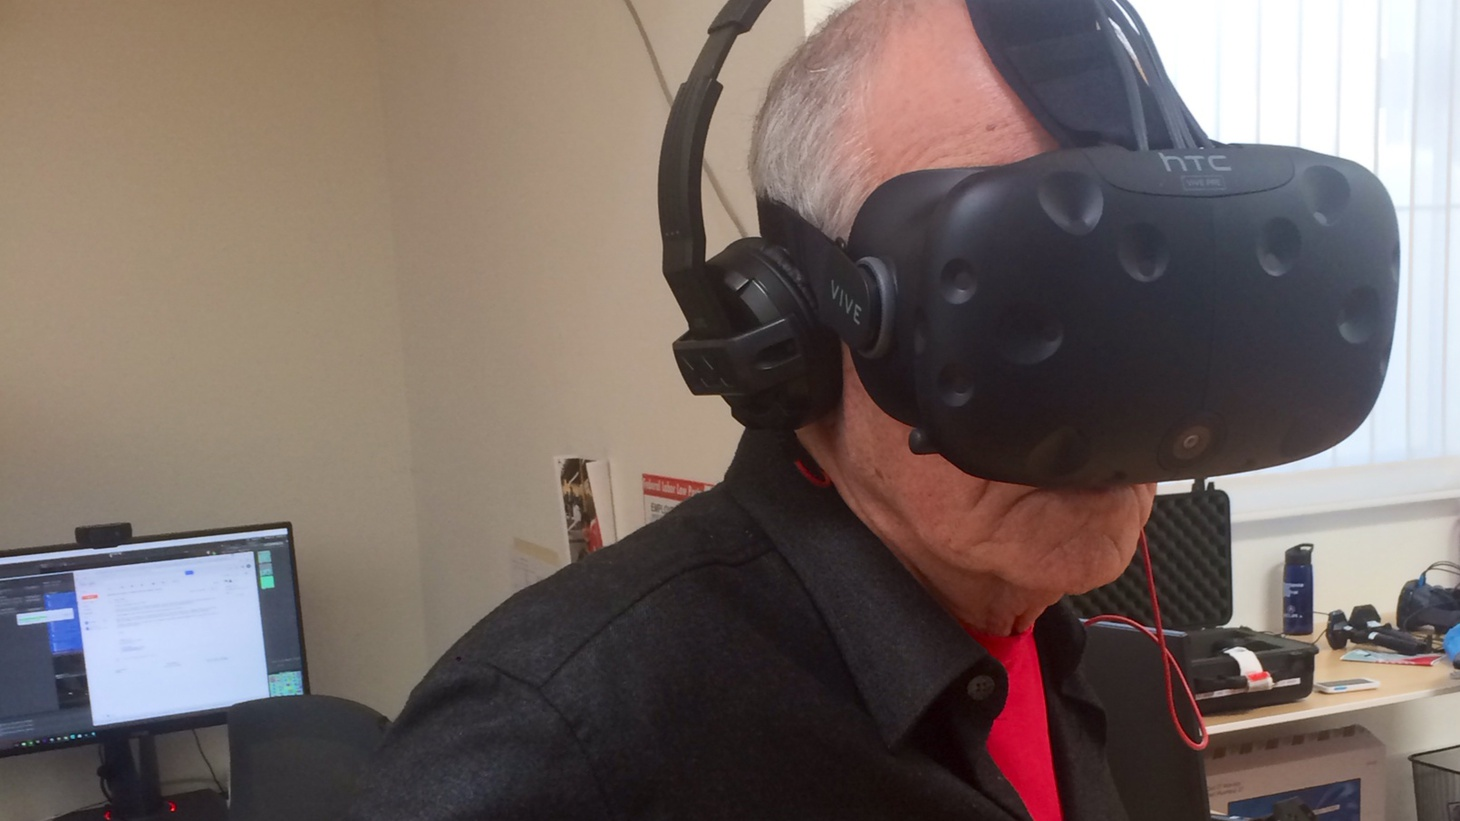 """Last week, Facebook's """"Oculous Rift"""" began shipping headsets to customers, but virtual reality is about much more than games or entertainment. The New York Times, the Des Moines Register, Frontline -- and KCRW -- are among the media organizations using it."""